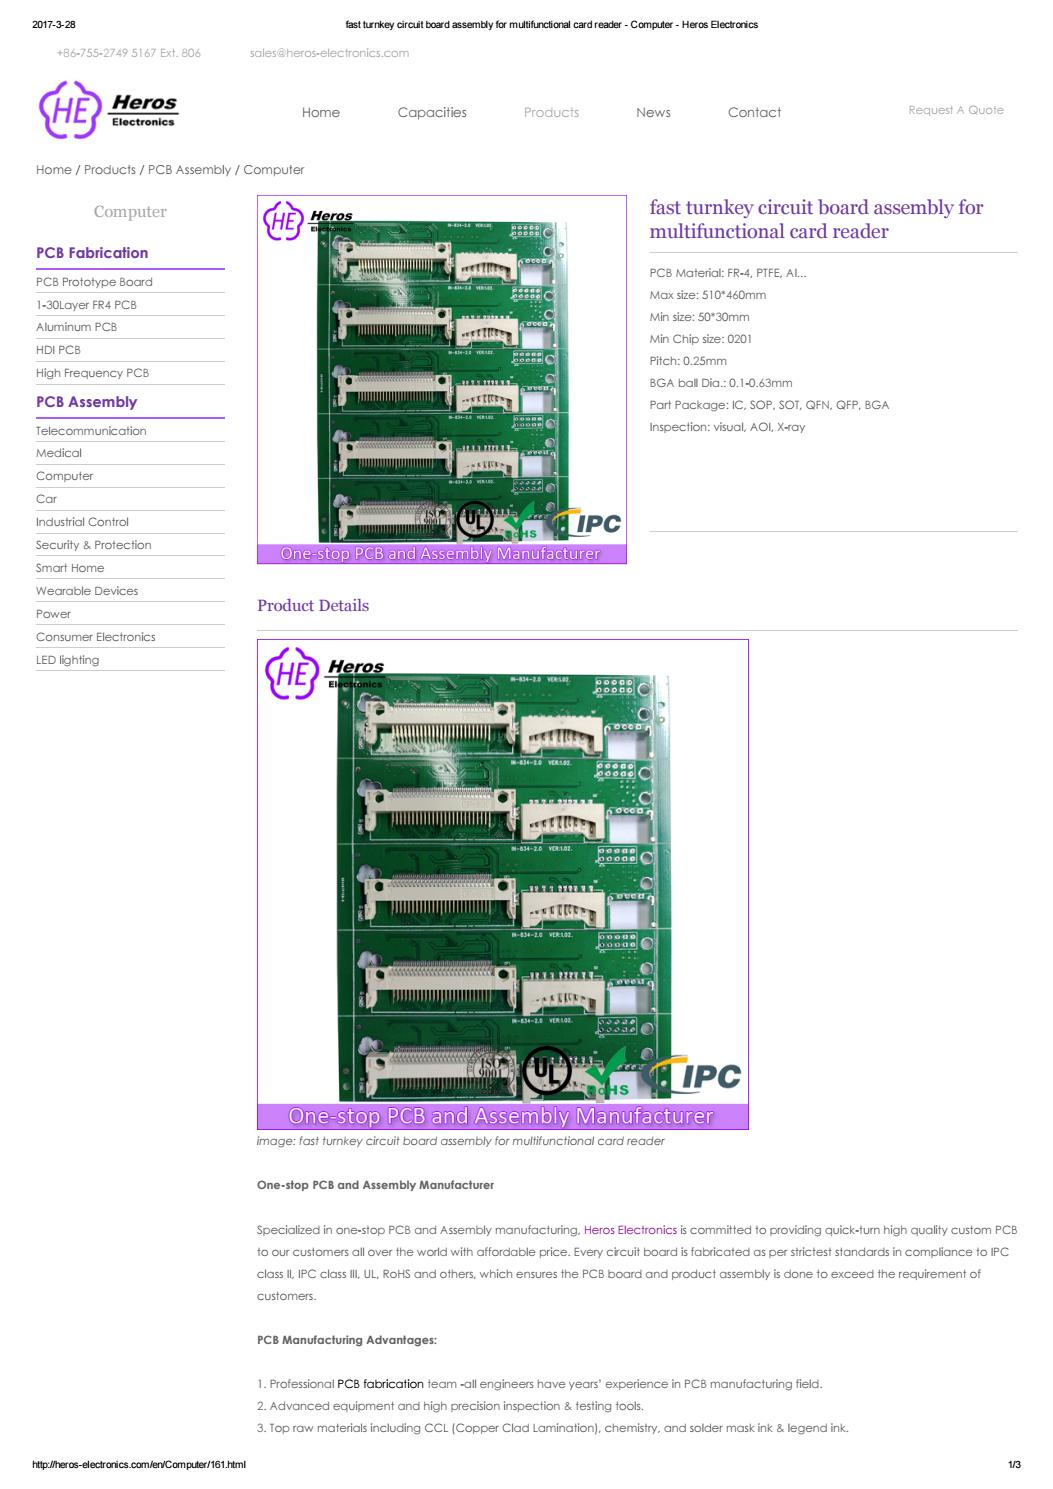 Fast Turnkey Circuit Board Assembly For Multifunctional Card Reader High Quality Computer Hdi Pcb Made In China Sale Heros Electronics By Shenzhen Co Ltd Issuu